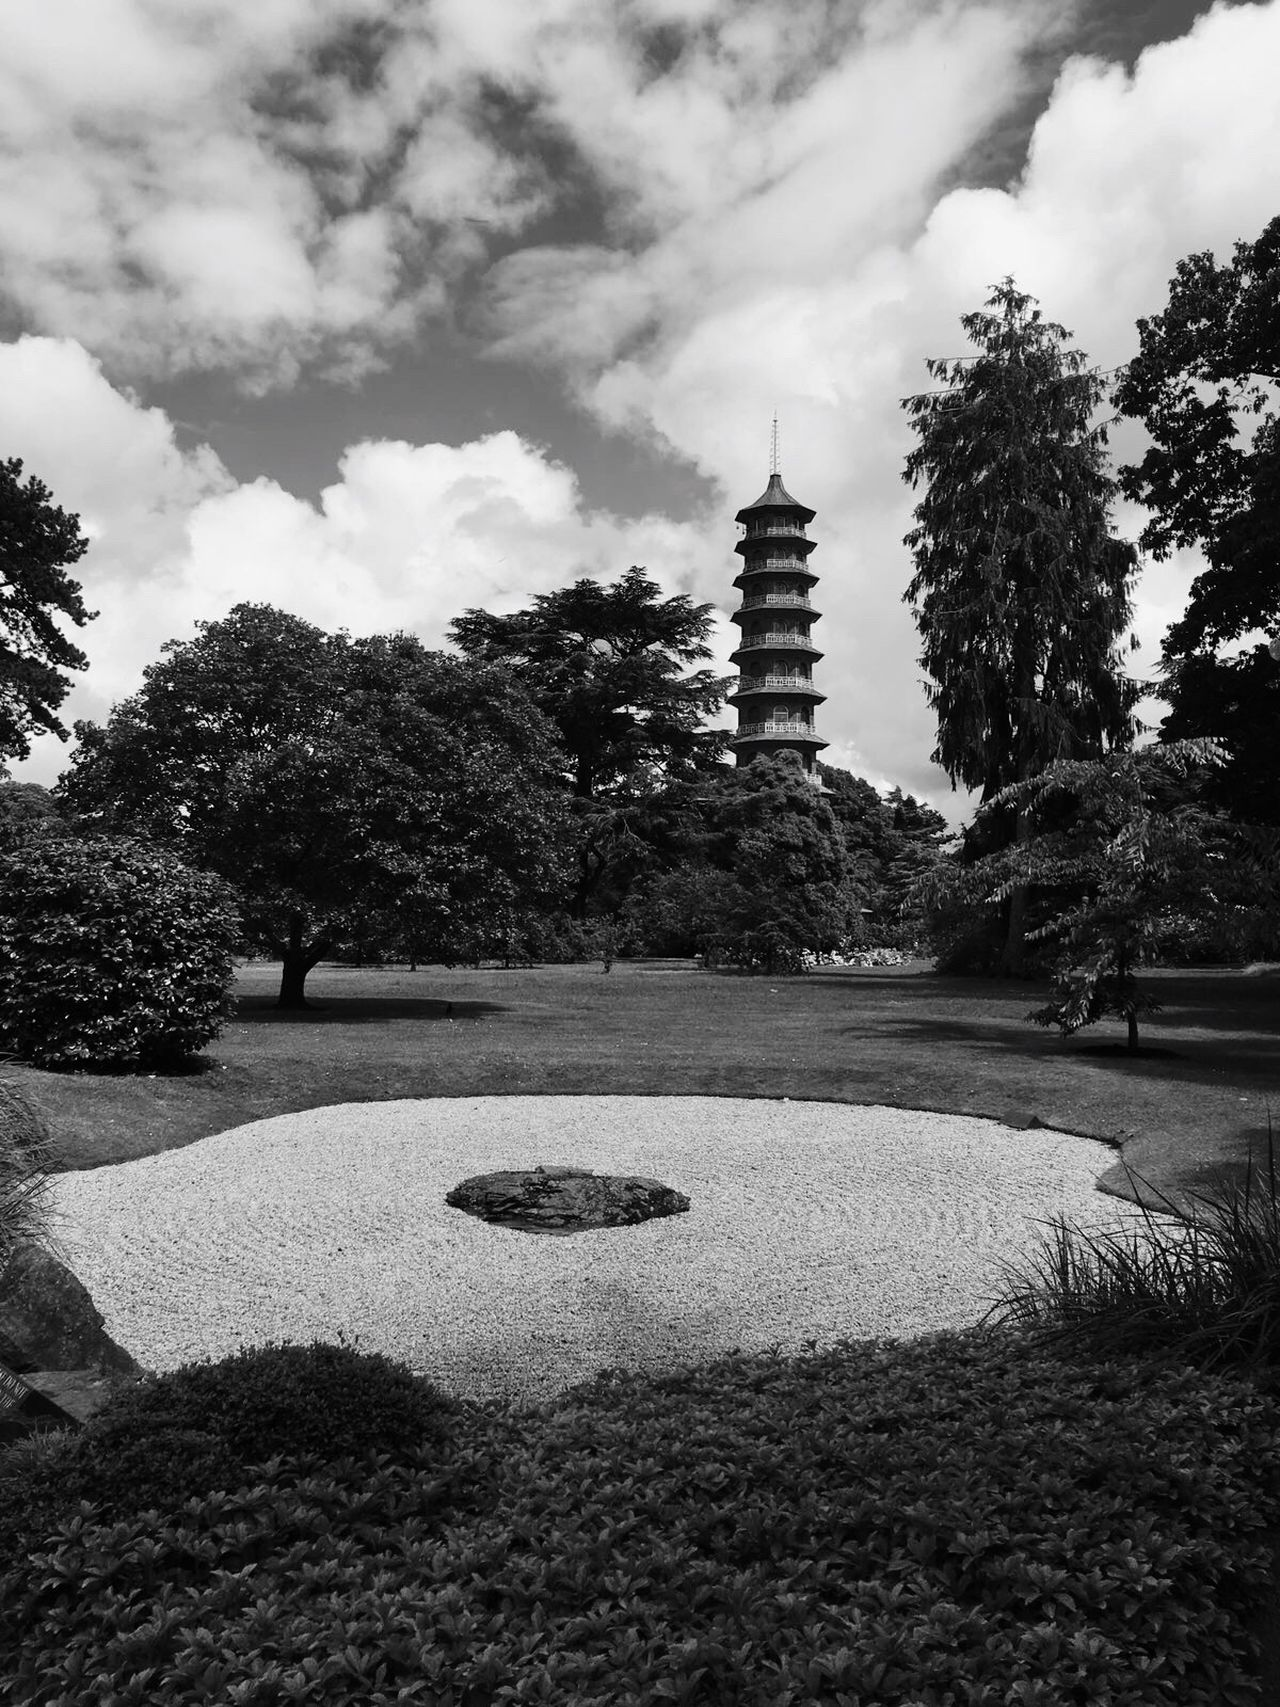 Sky Tree Cloud - Sky Outdoors No People Growth Day Architecture Nature Beauty In Nature Japanese  Building Kew Kew Gardens Black And White Cloud Architecture Zen Zen Garden Sculpture Peace Relaxation Mindful Reflection